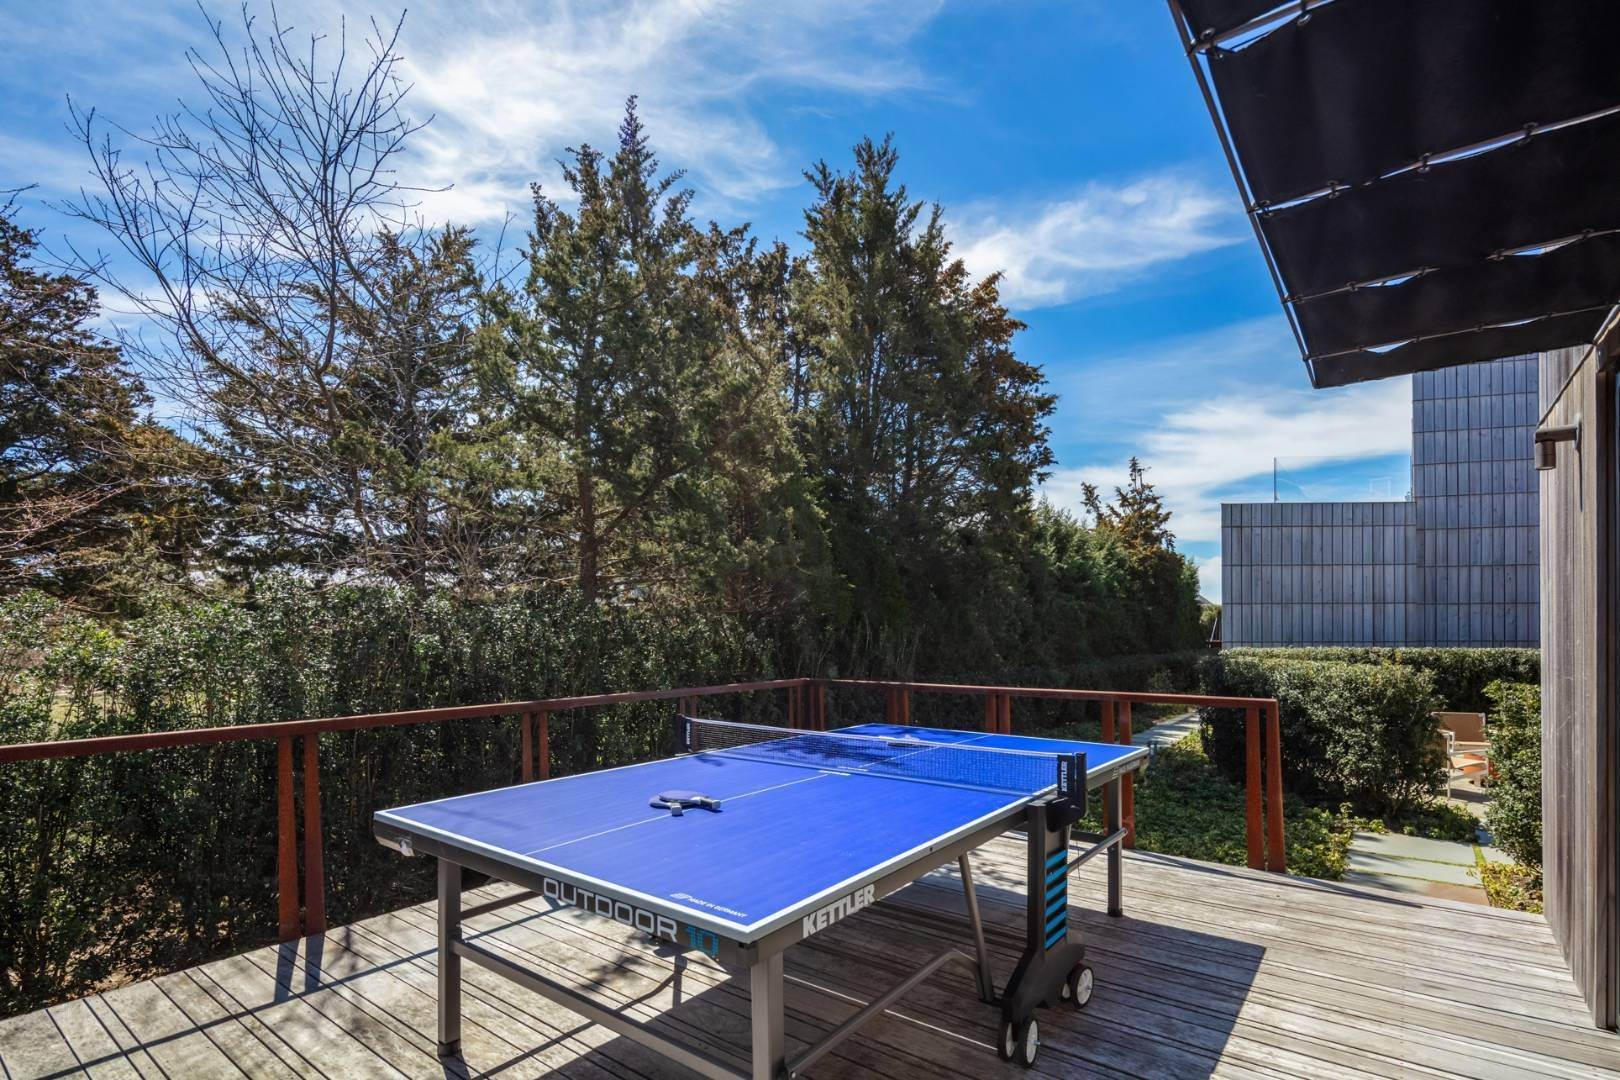 30. Single Family Home for Sale at Near Ocean Bates Masi Modern, Amagansett 159 Atlantic Avenue, Amagansett, NY 11930